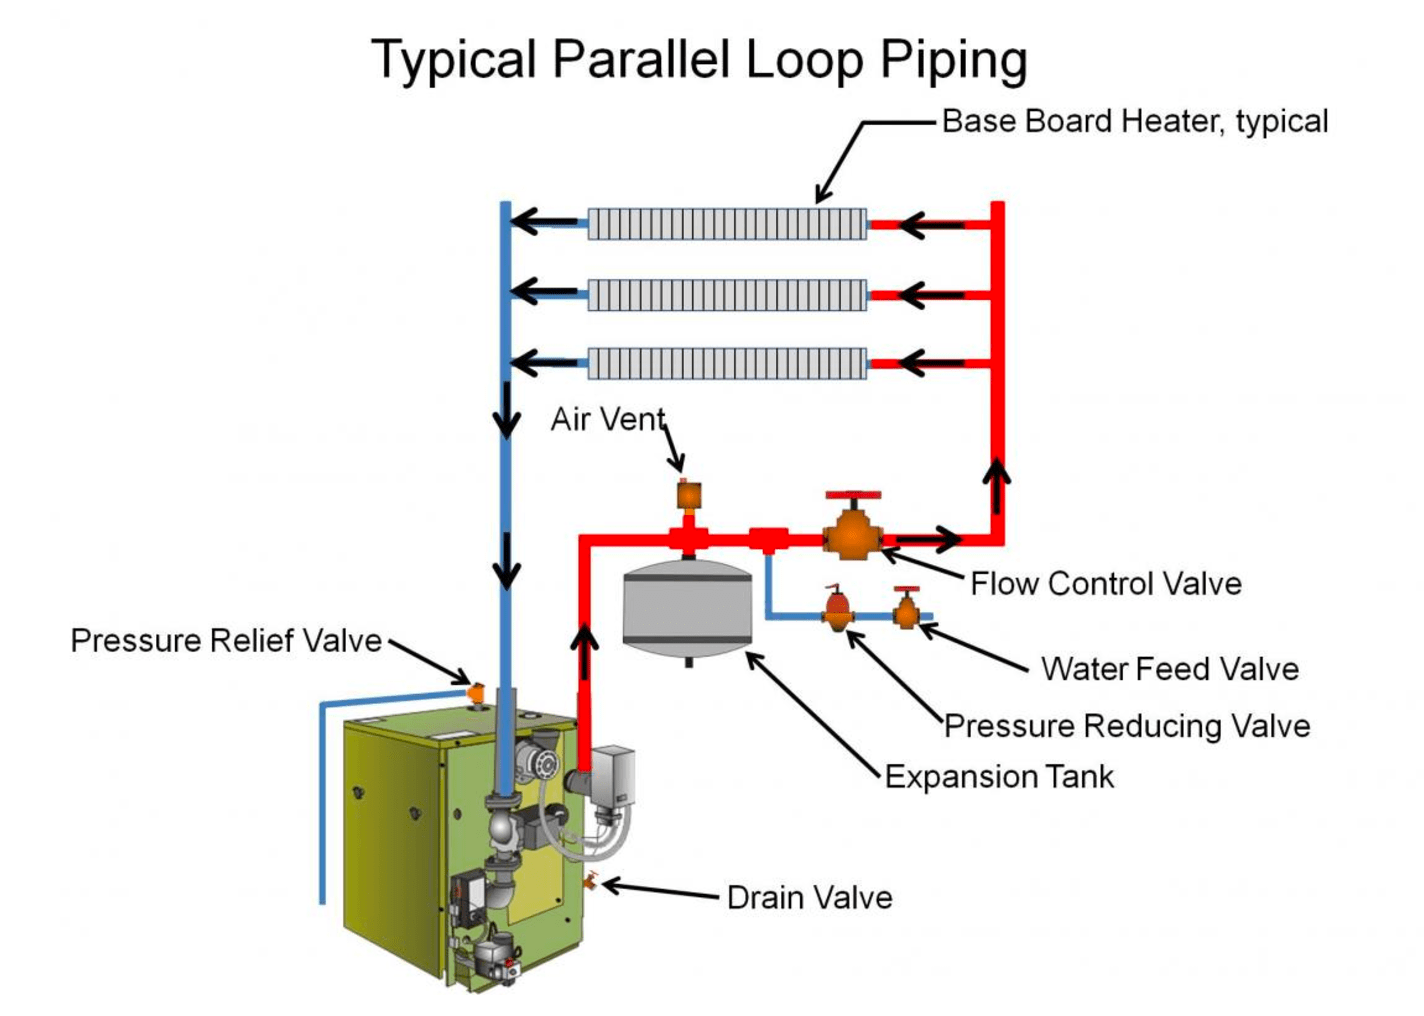 hight resolution of boilers can provide zoned heating with parallel piping loops image courtesy of calcs plus